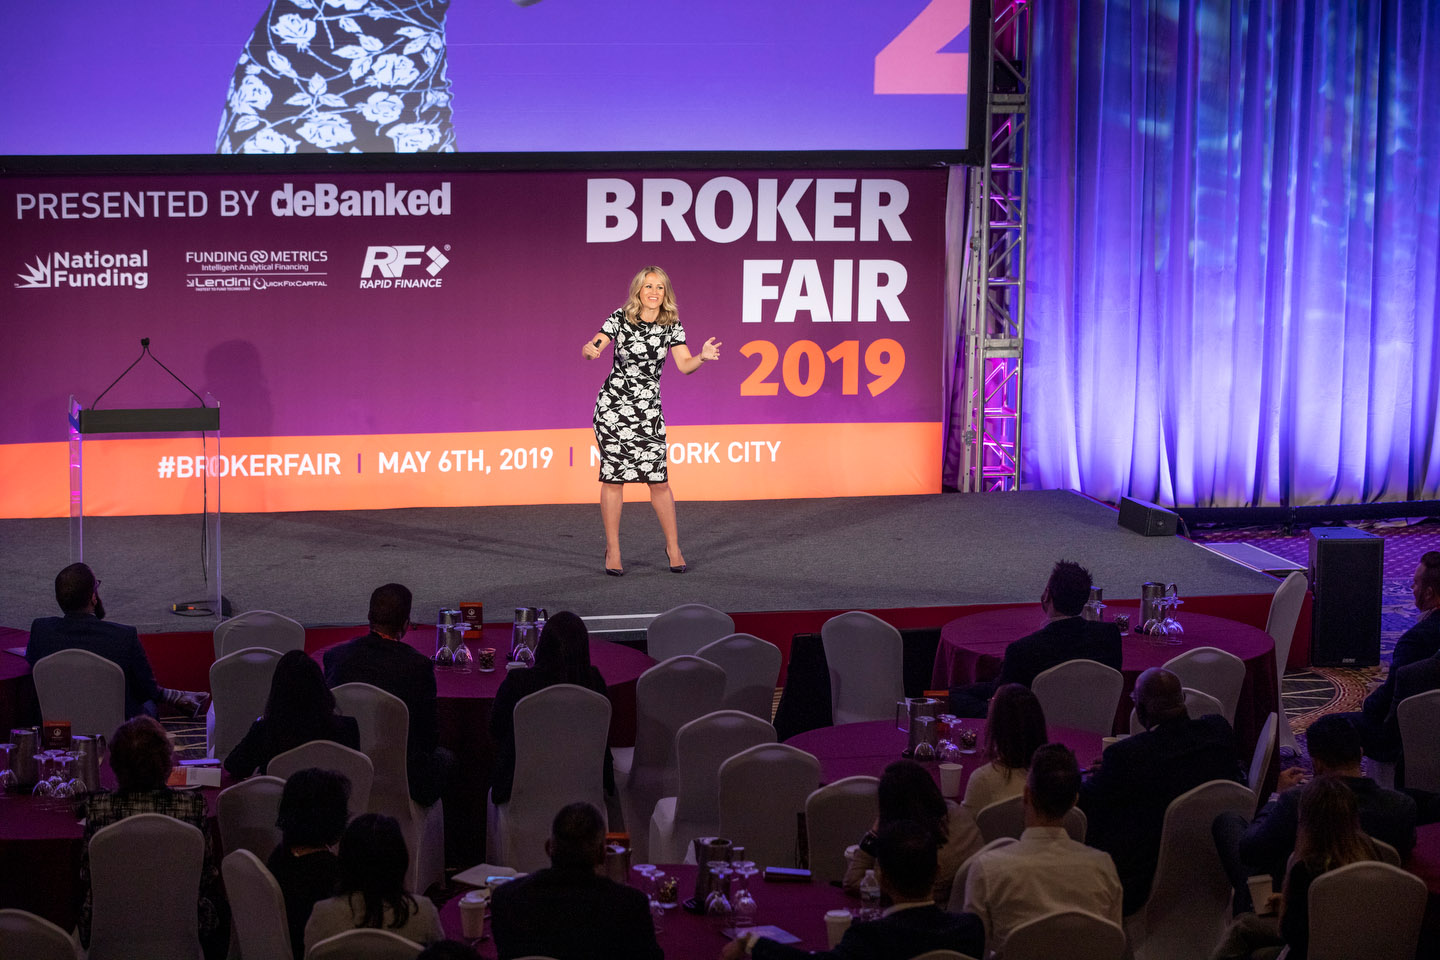 Broker Fair 2019 - Presented by deBanked - 372